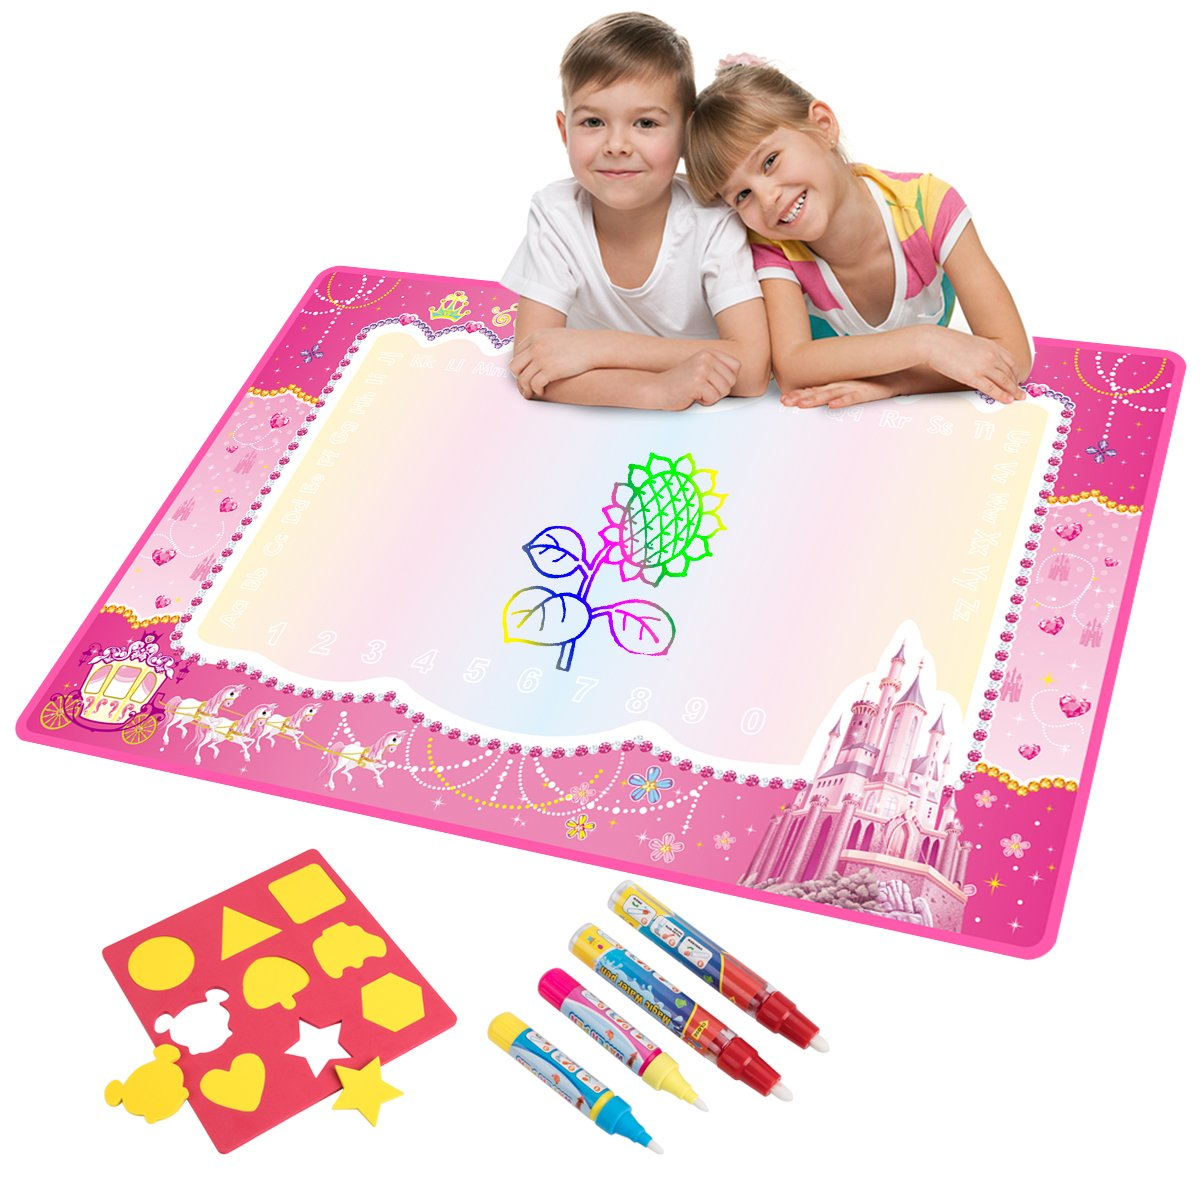 Water Doodle Mat, Water Drawing Mat Kids Toys Large Magic Toddlers Painting Board Writing Mats Scribble Boards with 4 Magic Pen and Draw Templates for Boys Girls Learning Gift Size 29 x 19 (Pink) by Vidillo (Image #1)